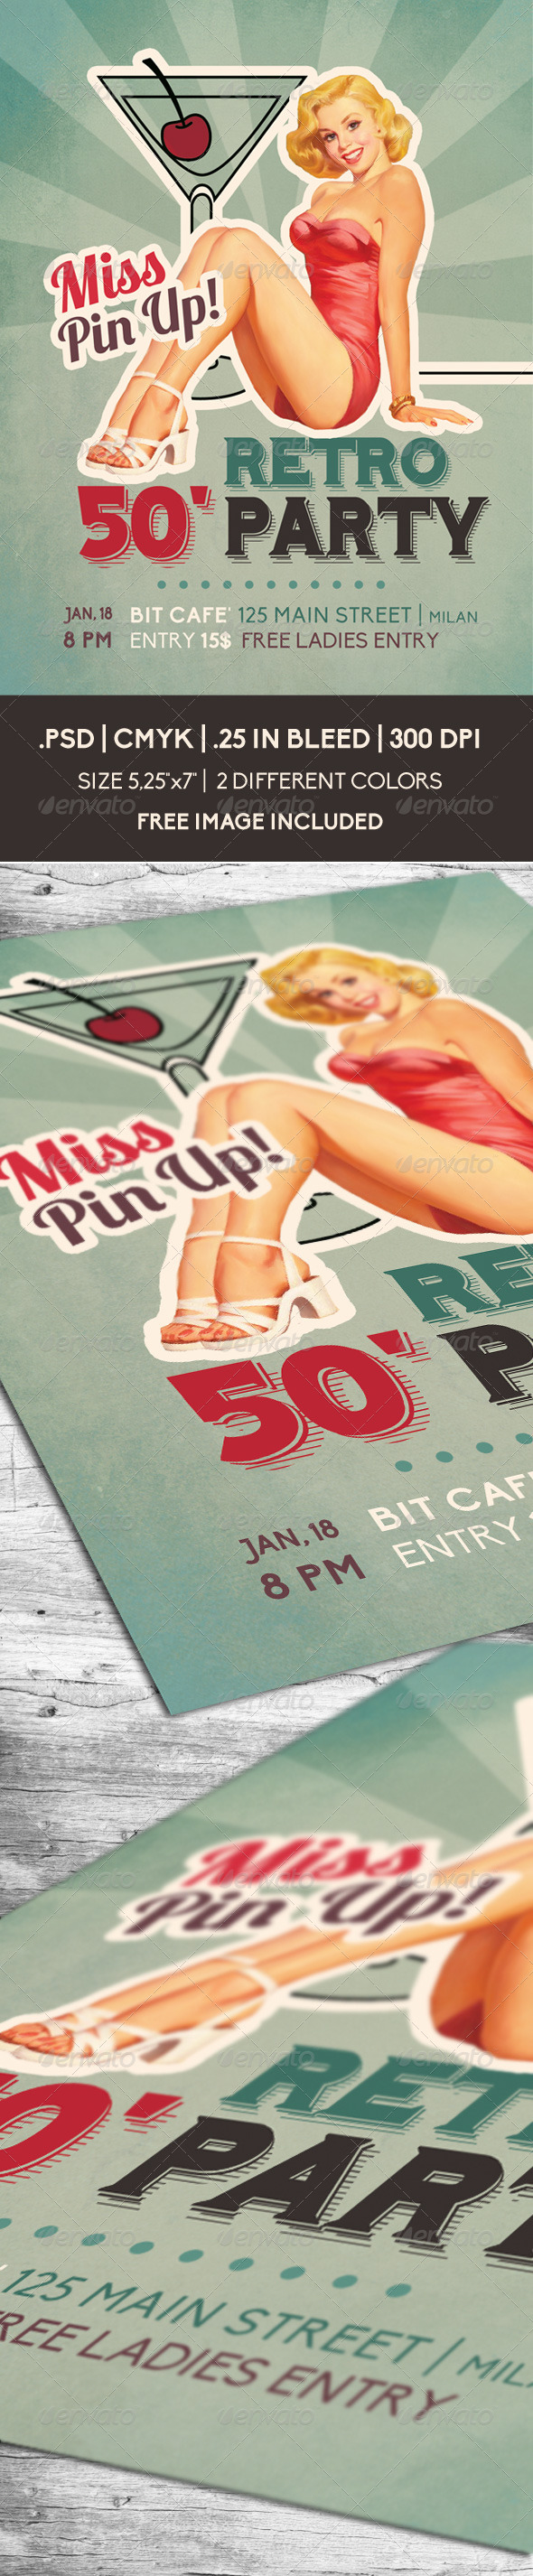 Retro 50' Party | Flyer - Clubs & Parties Events